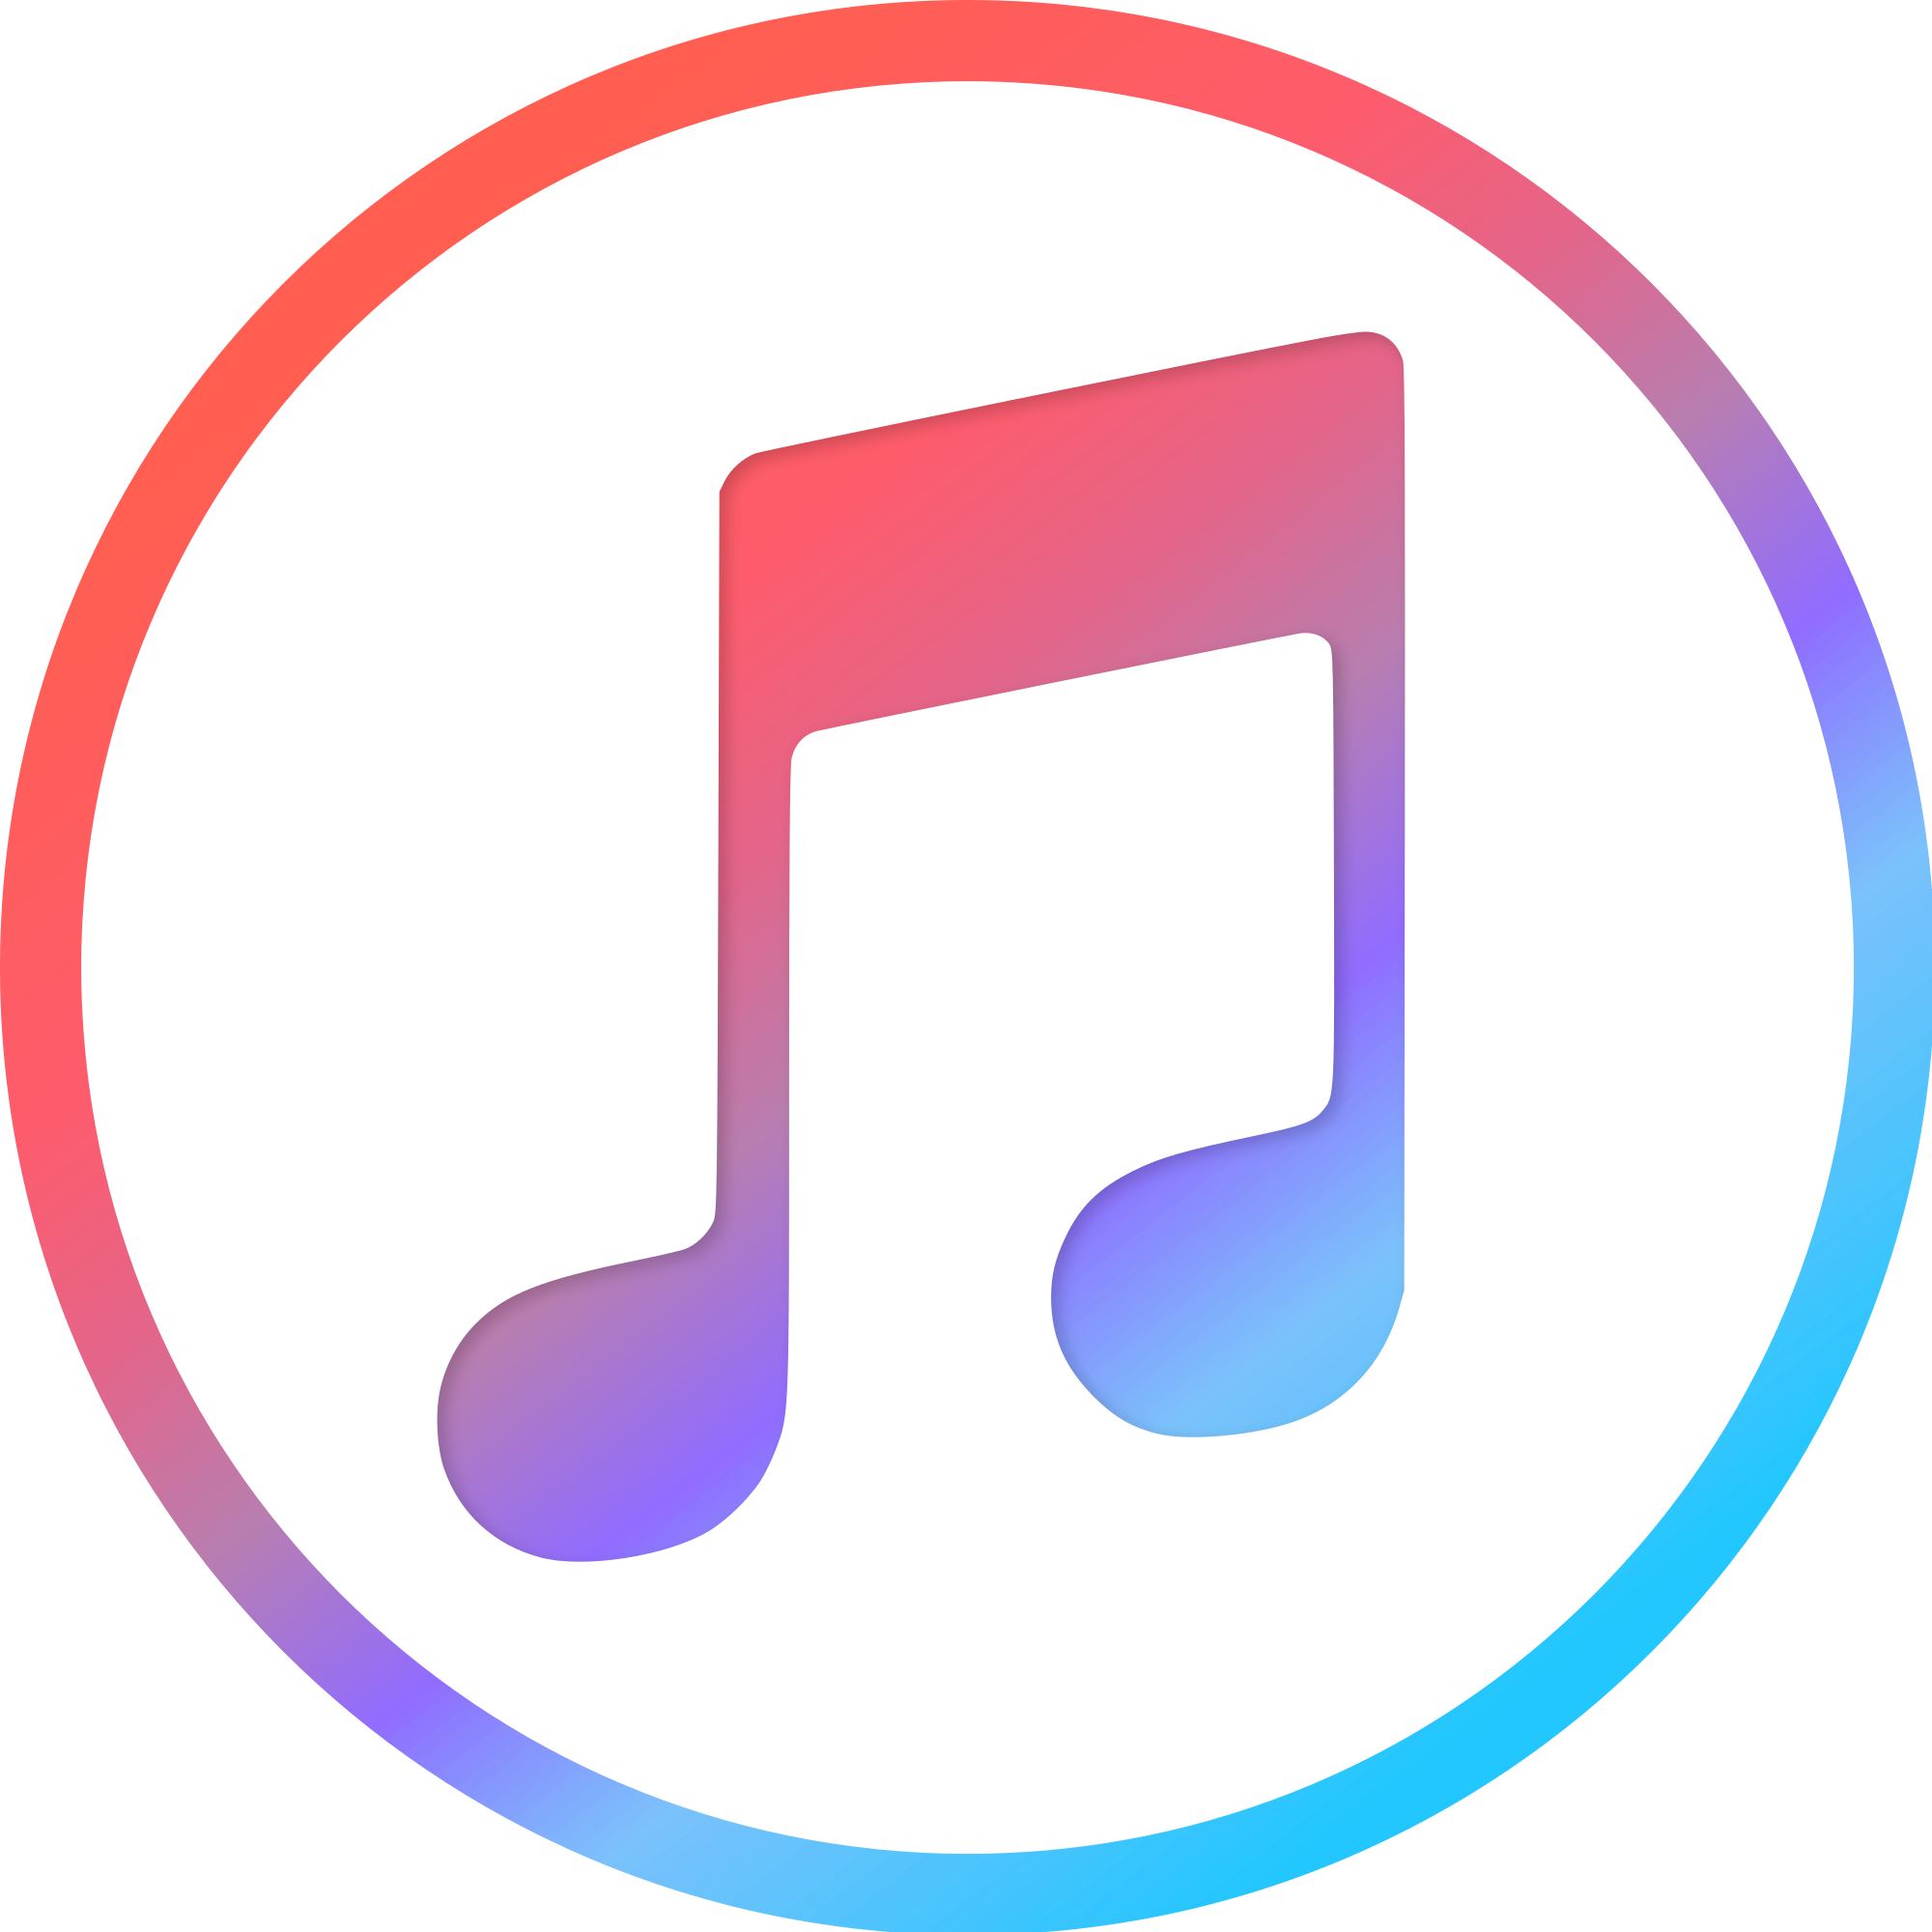 Itunes logo 2018 png. File svg wikimedia commons